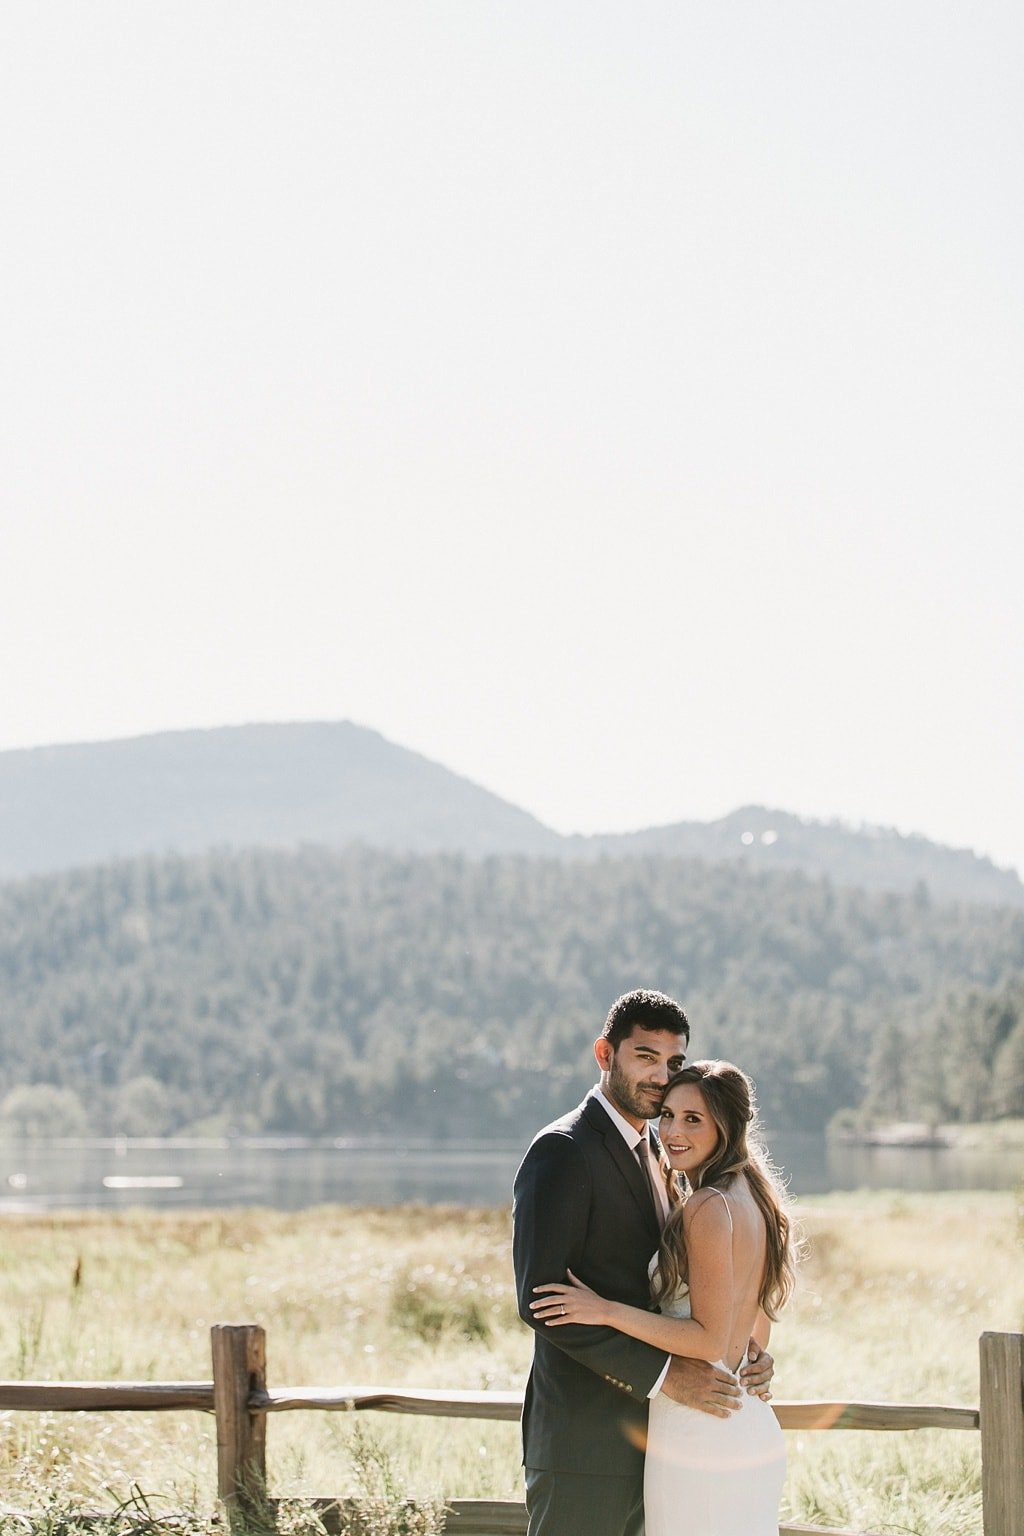 Evergreen Lake House Brunch Wedding Colorado bride and groom portrait photography overlooking mountains and lake